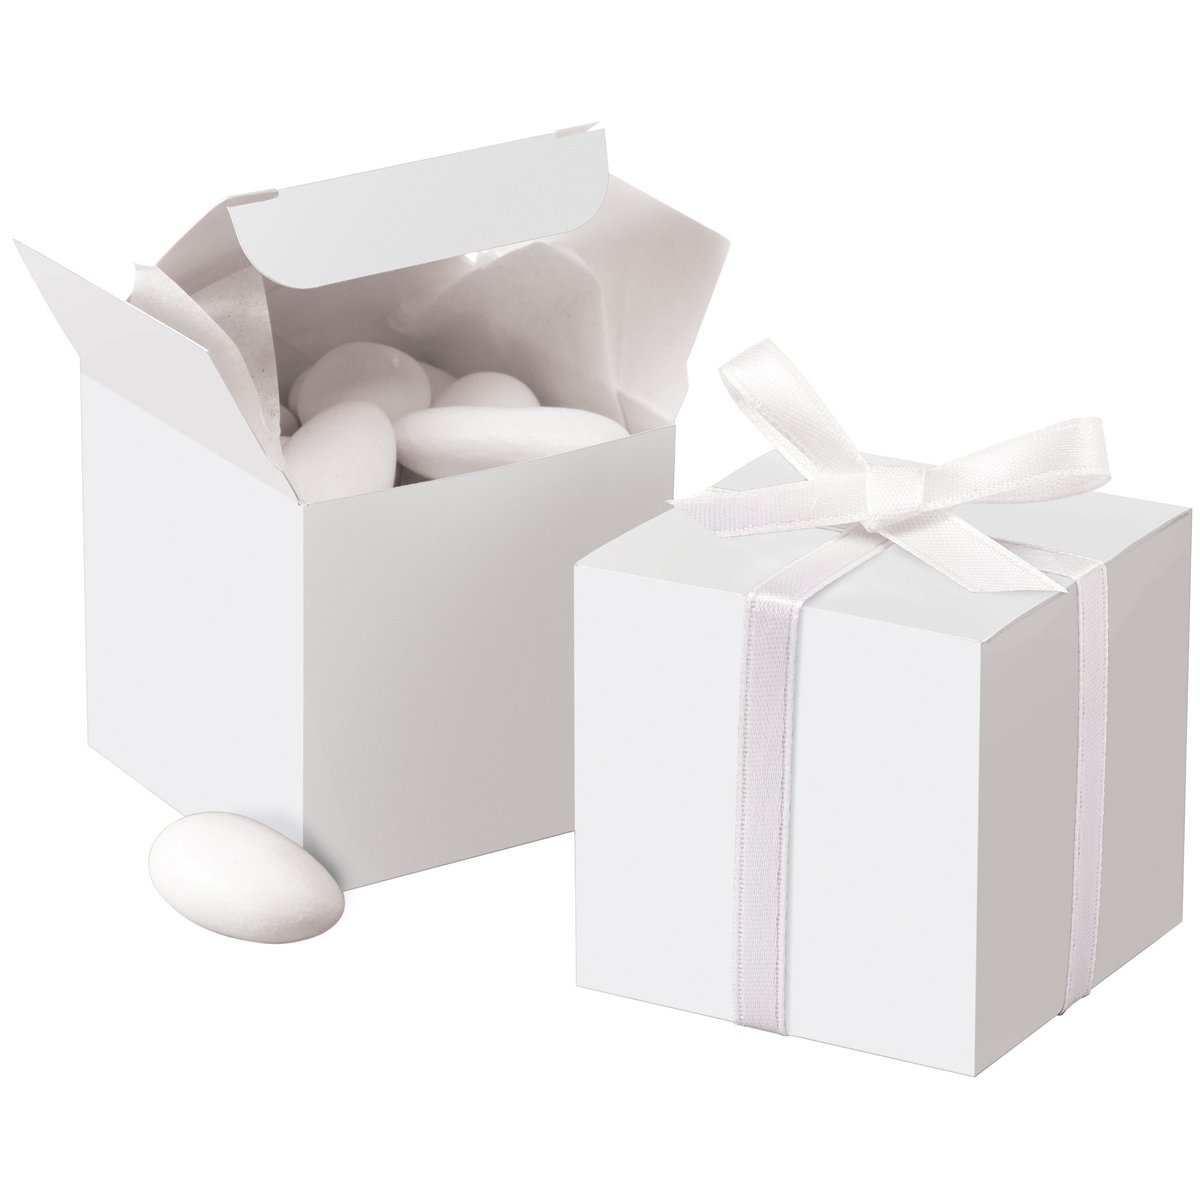 Wilton White Square Favor Box Kit, 100 Count, 1006-0631